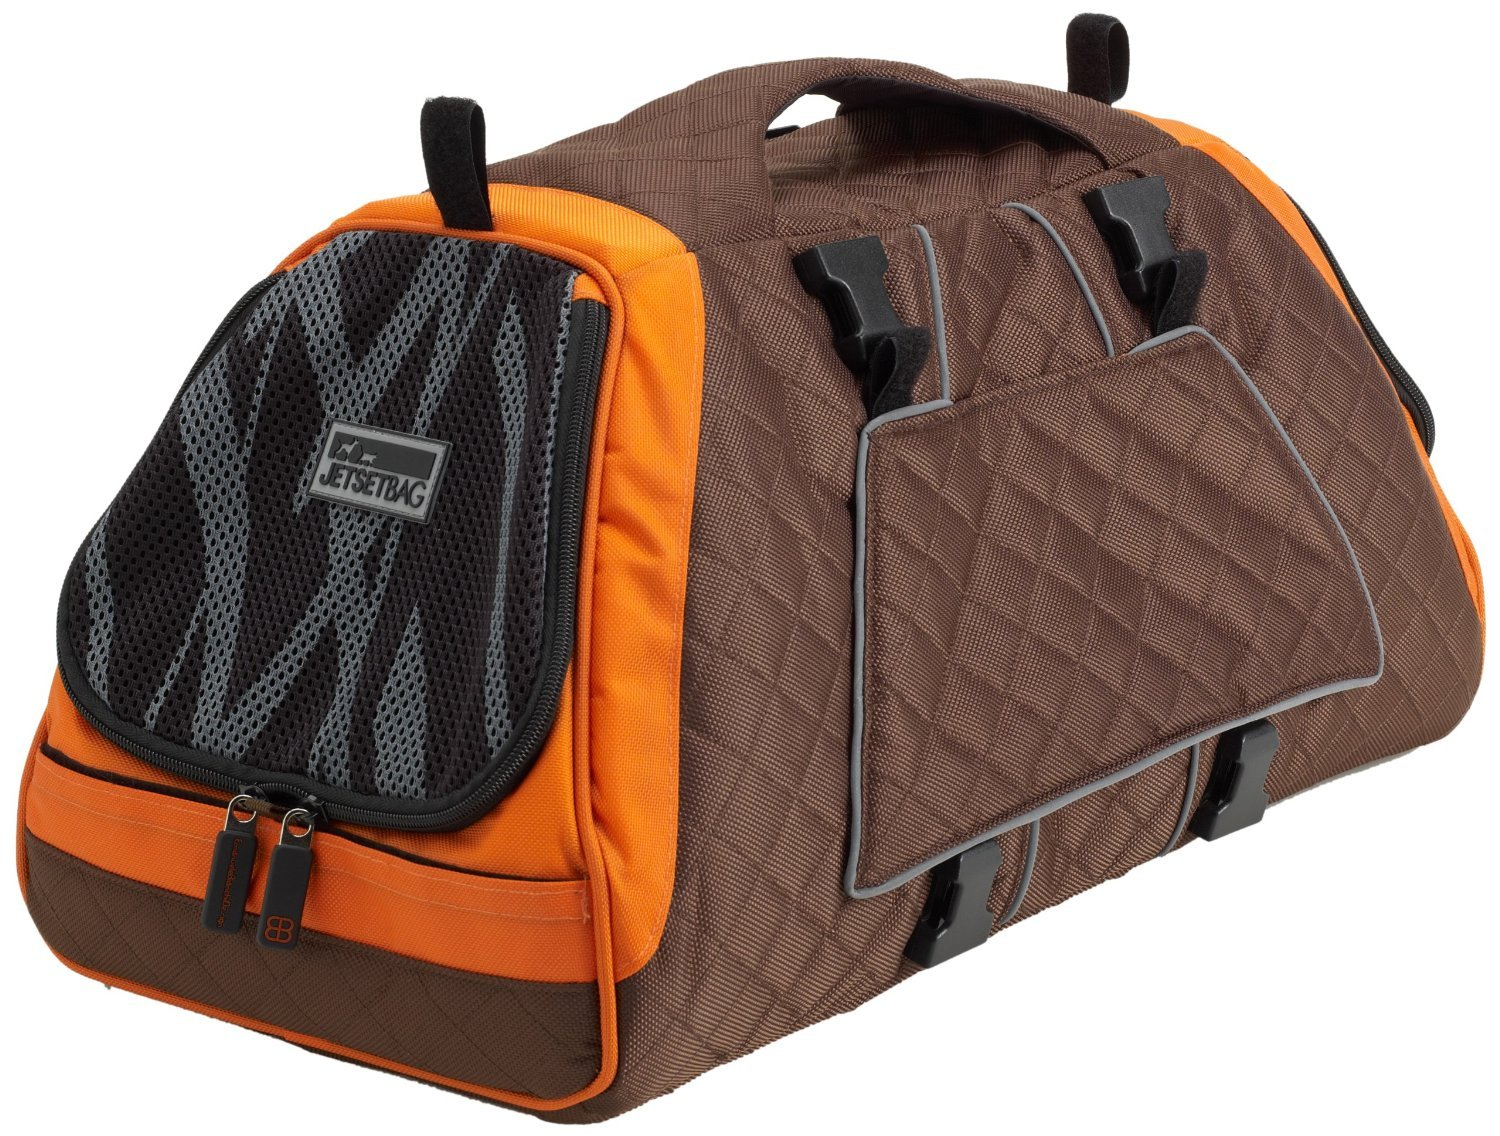 Petego Jet Set Pet Carrier with Forma Frame, Large, Orange and Brown